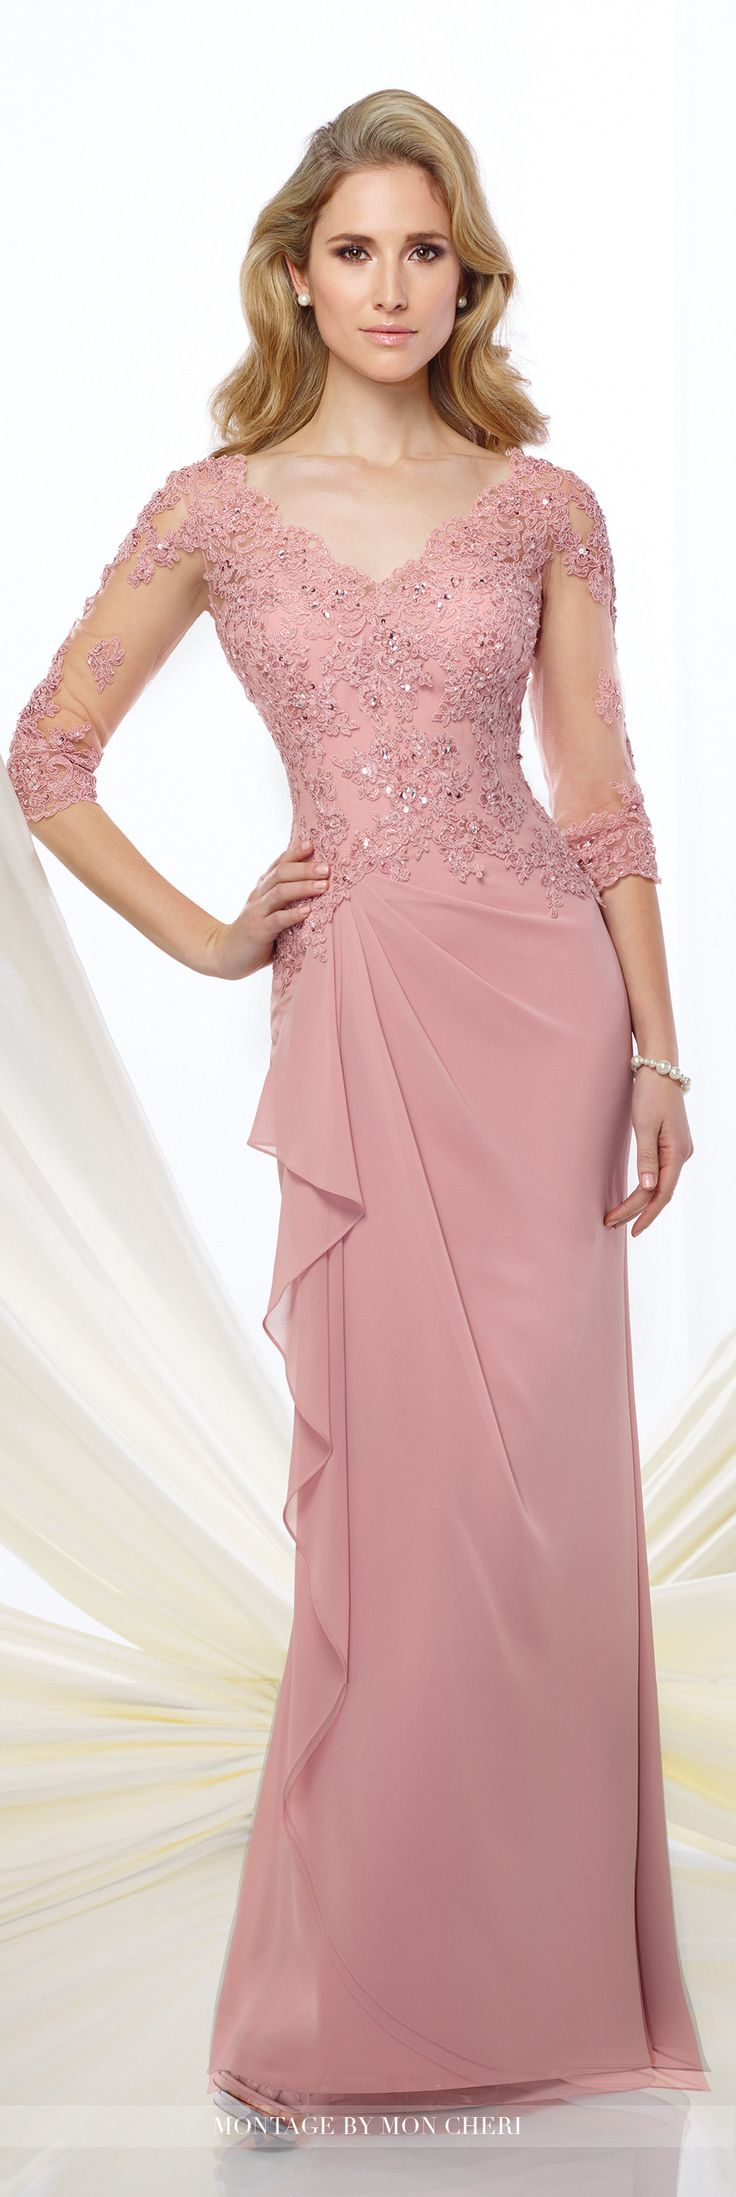 Montage by Mon Cheri - 216965 - Chiffon slim A-line gown with illusion and lace three-quarter length sleeves, front and back scalloped V-necklines, hand-beaded lace appliqué bodice, side gathered skirt with cascading ruffle.Sizes: 4 - 20, 16W - 26WColors: Steel Gray, Dusty Rose, Navy Blue